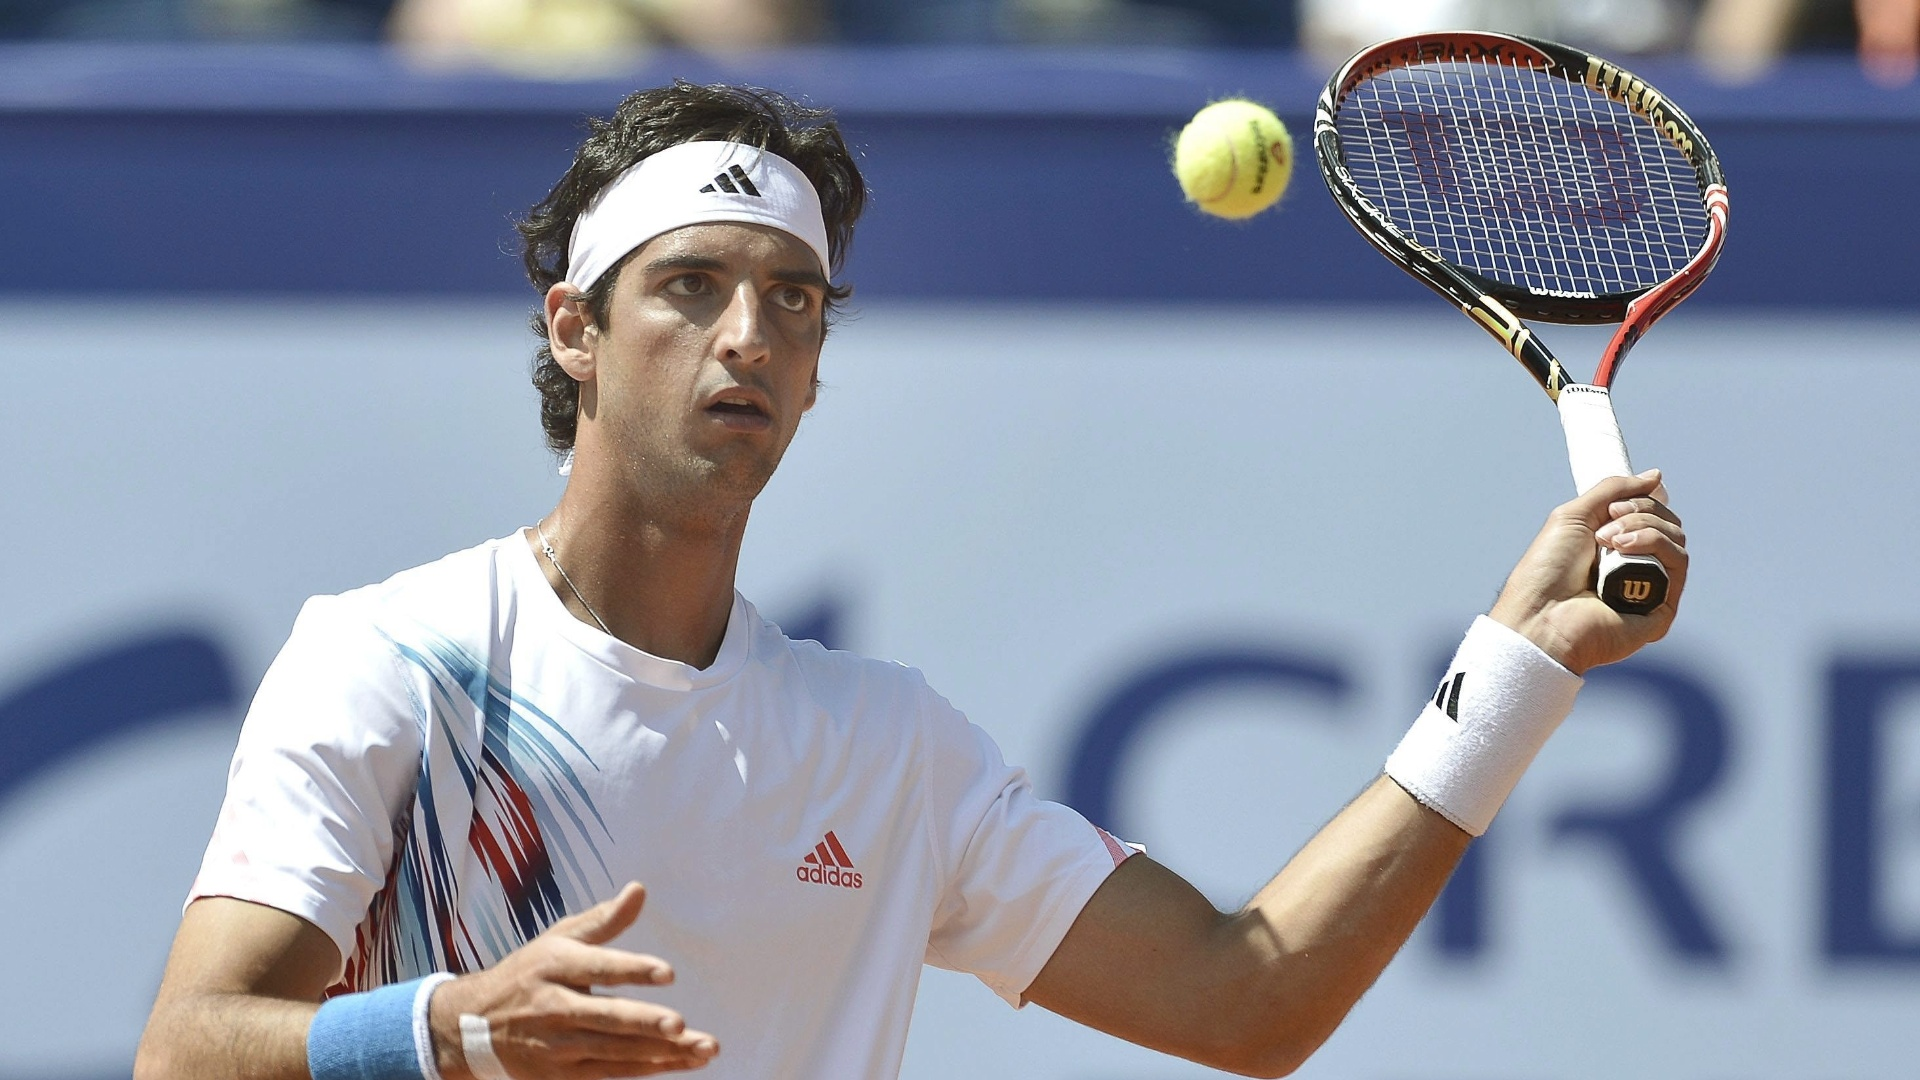 Thomaz Bellucci encarou o eslovaco Blaz Kavcic na primeira rodada do Torneio de Gstaad-2012